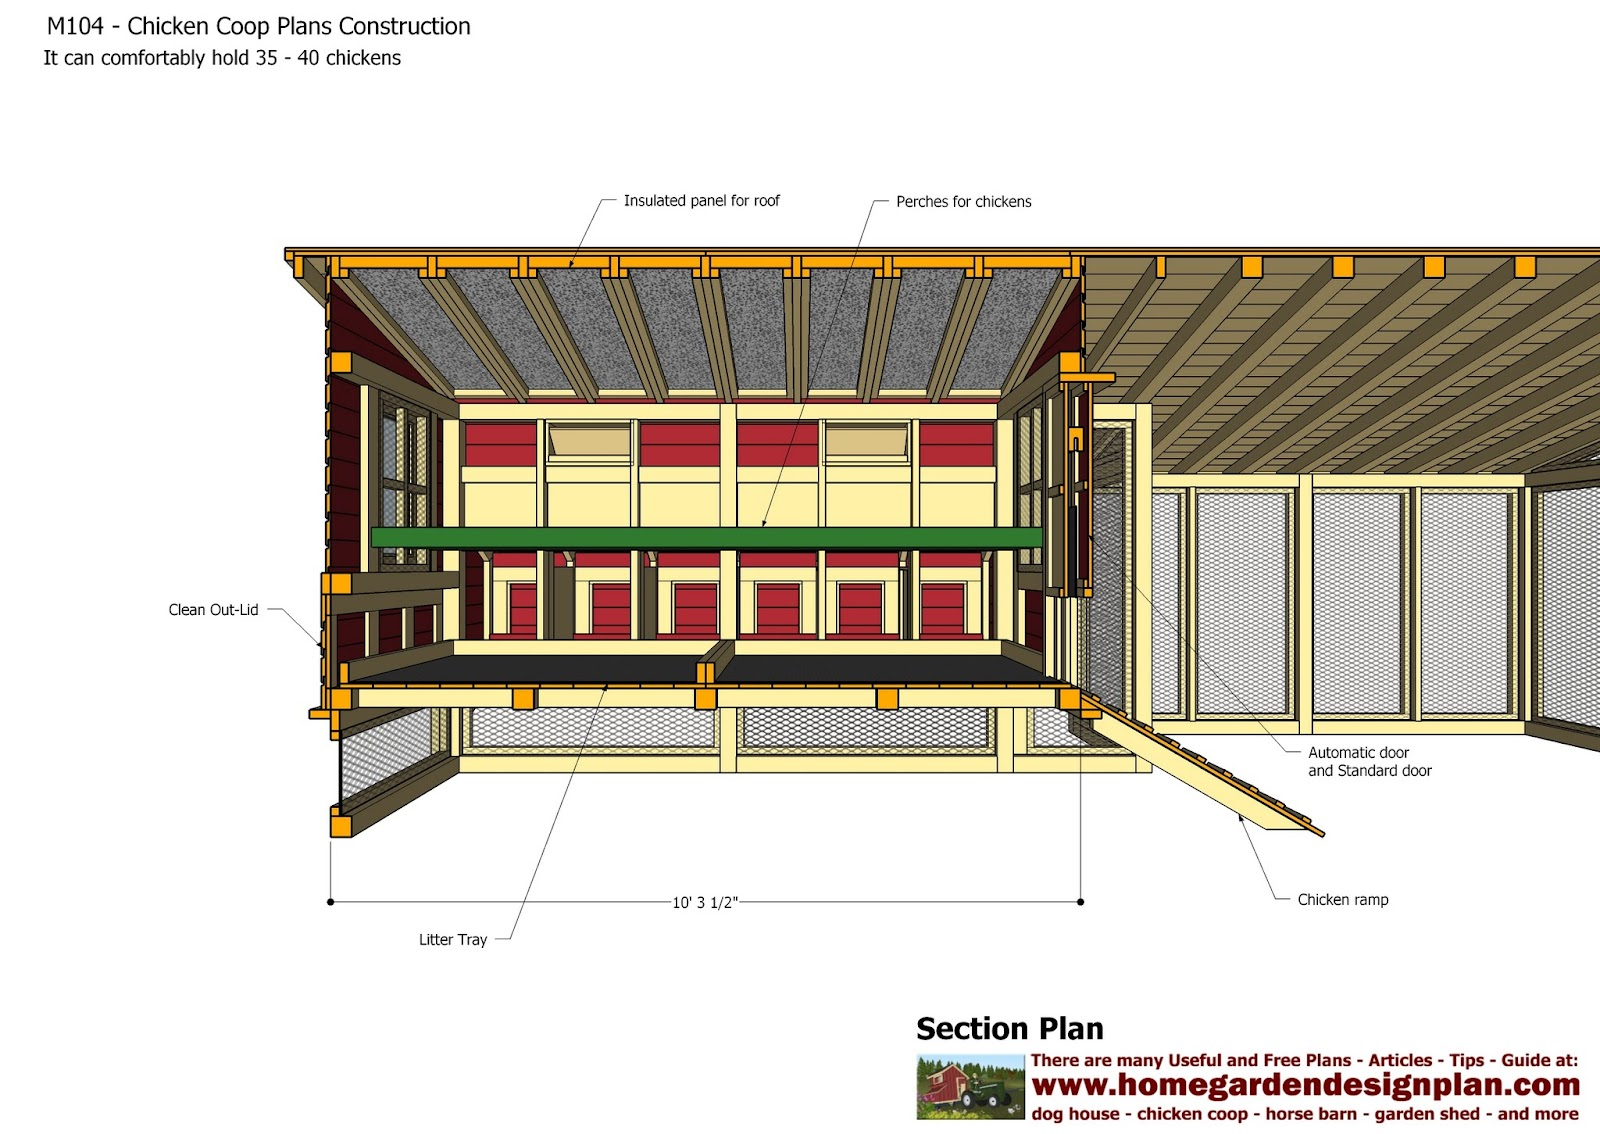 Home garden plans m104 chicken coop plans construction for Free coop plans